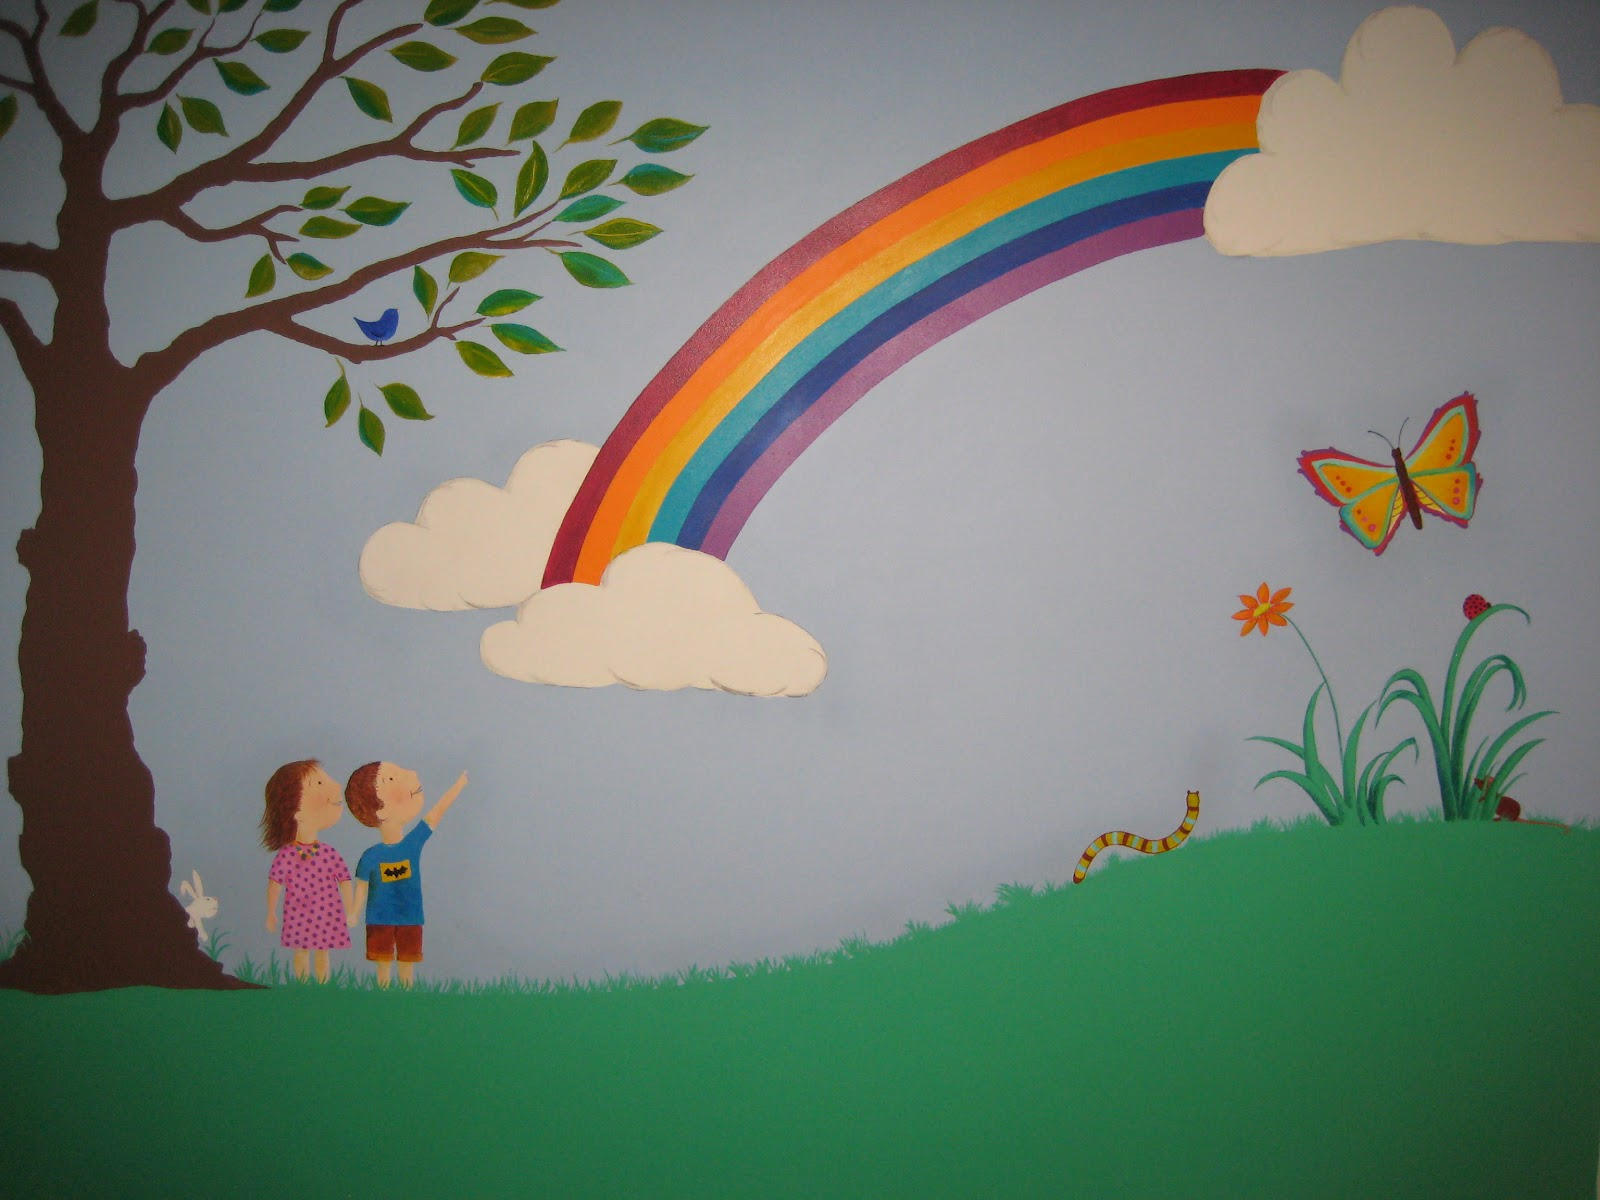 Rainbow wall mural 2017 grasscloth wallpaper for Children room mural